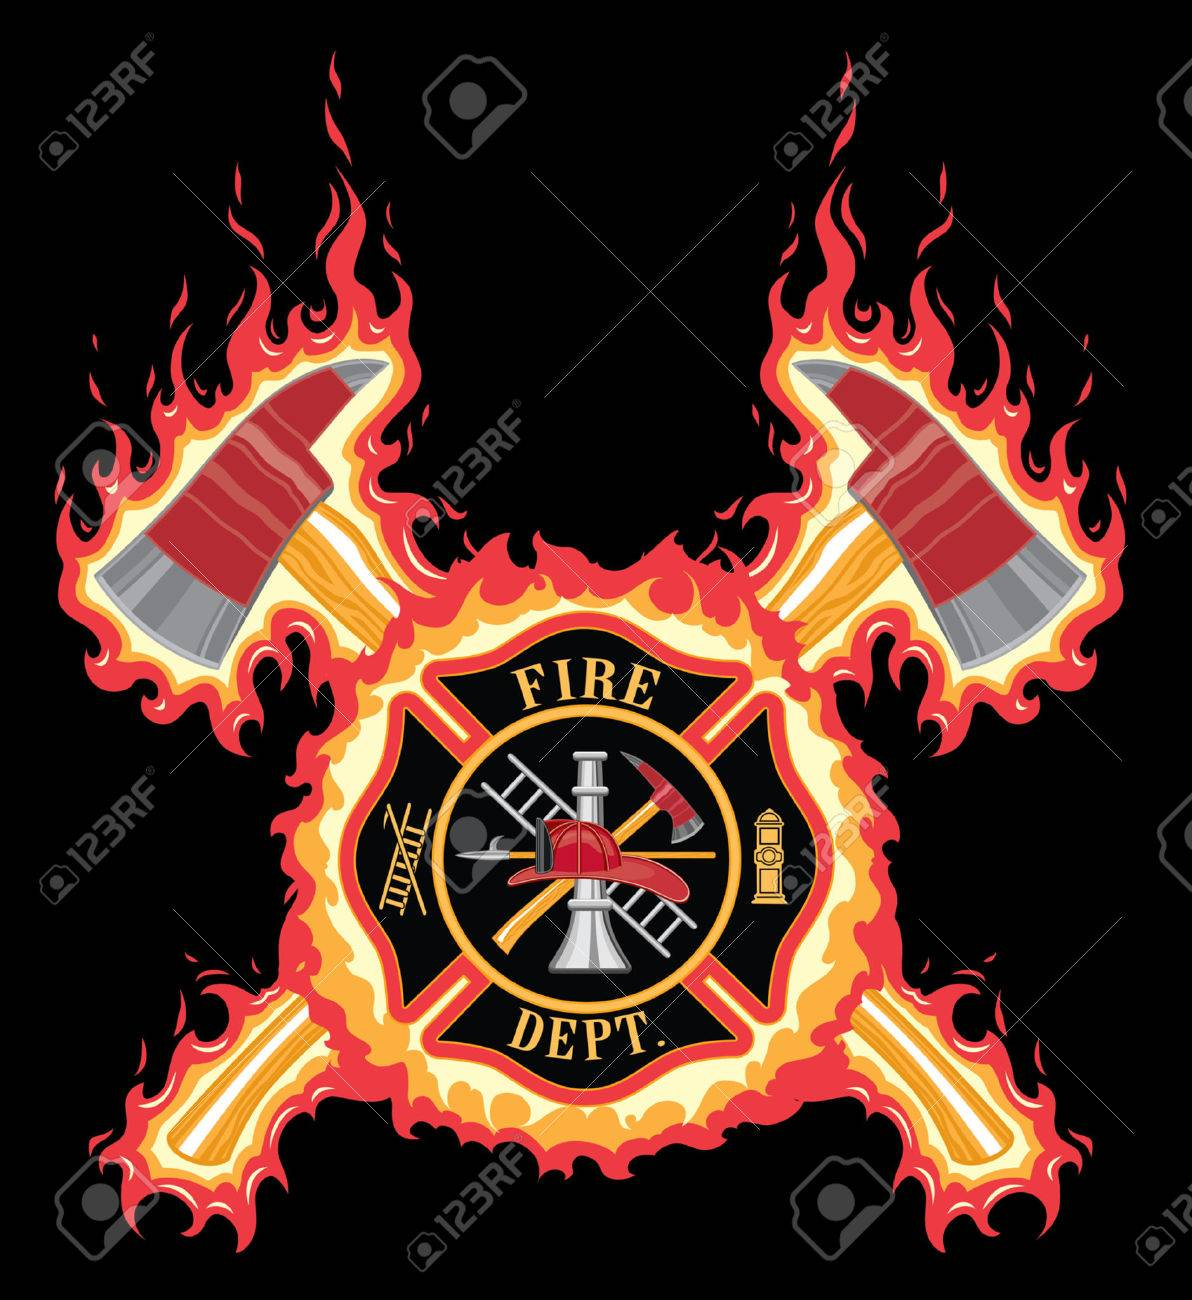 hight resolution of firefighter cross with axes and flames is an illustration of a fire department or firefighter cross